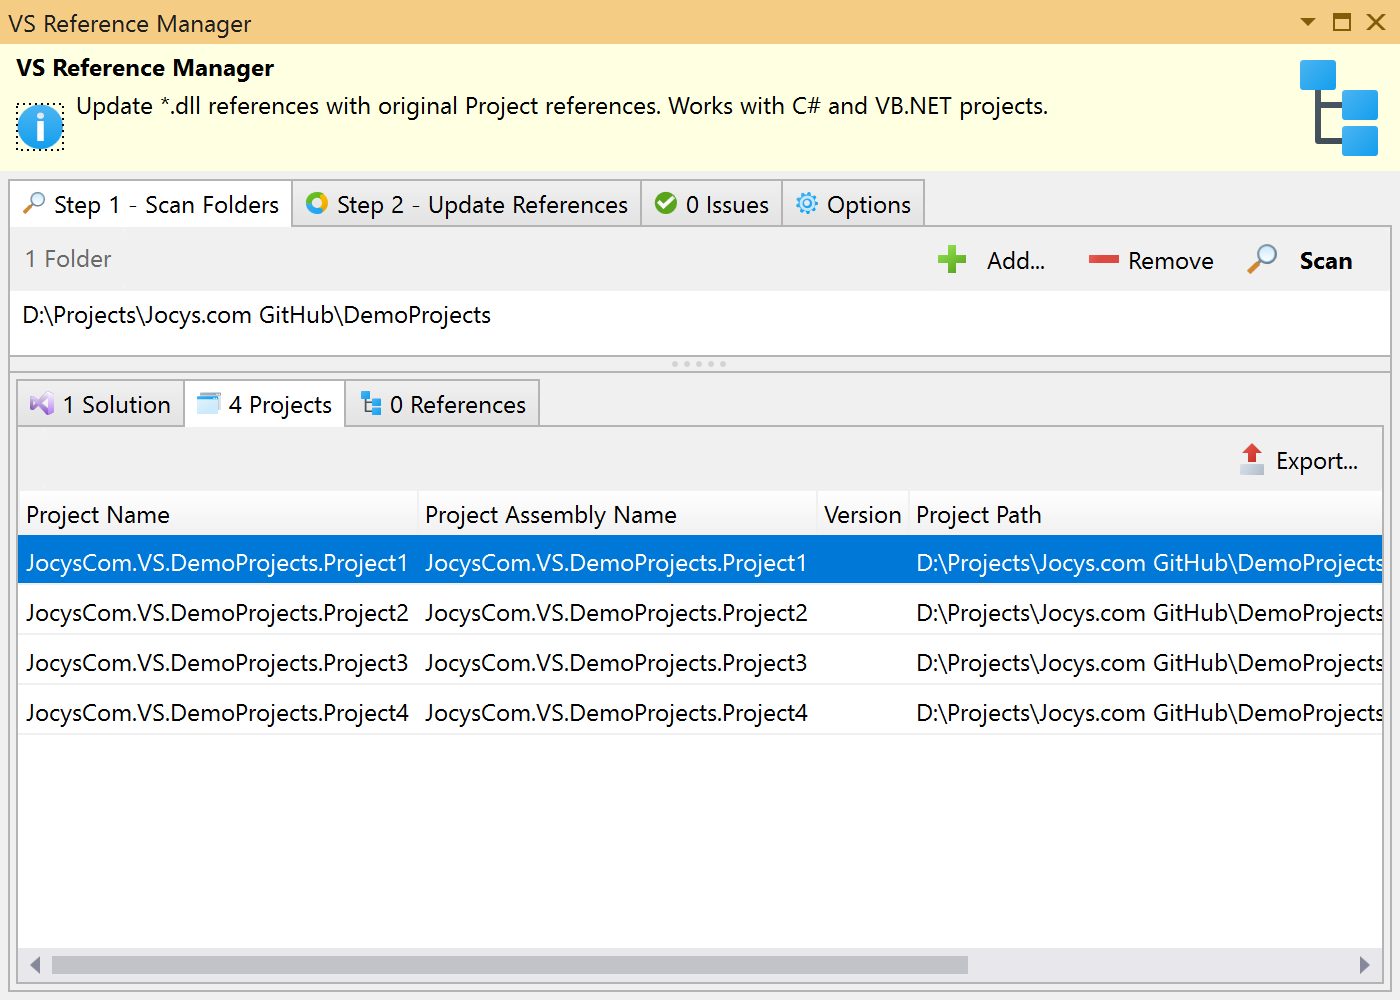 VS_Reference_Manager_2